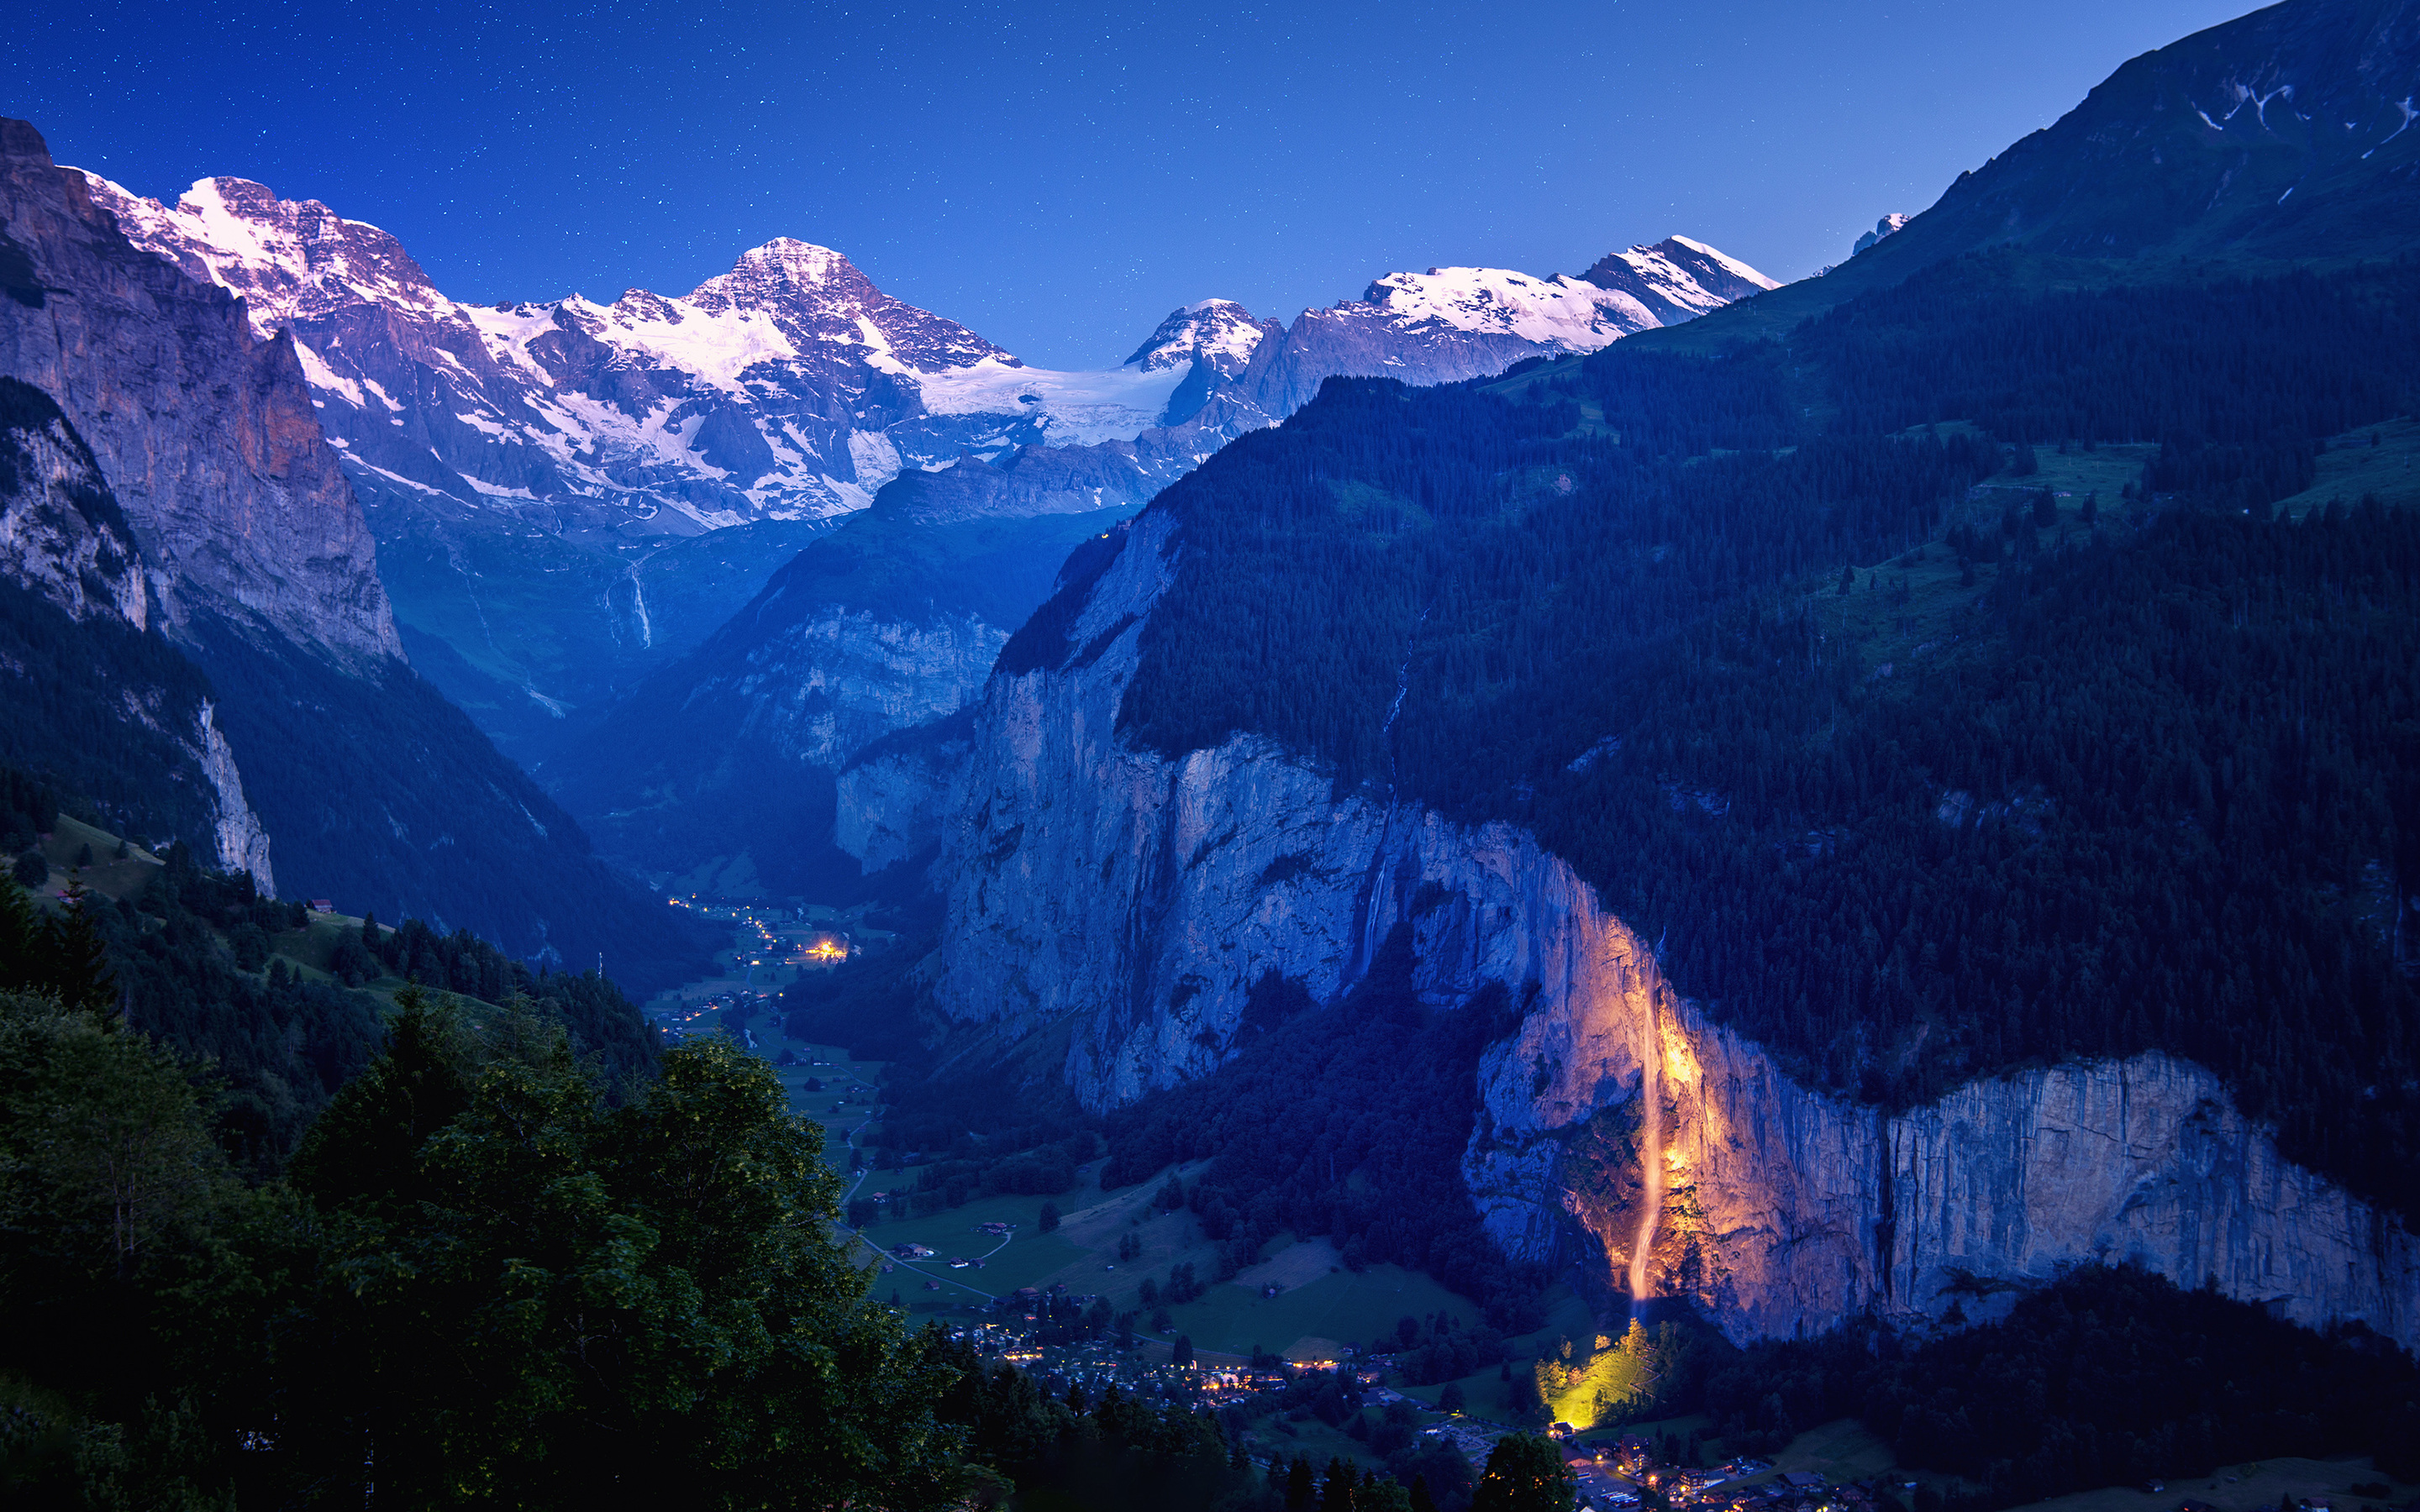 switzerland-landscape-4k-hd.jpg